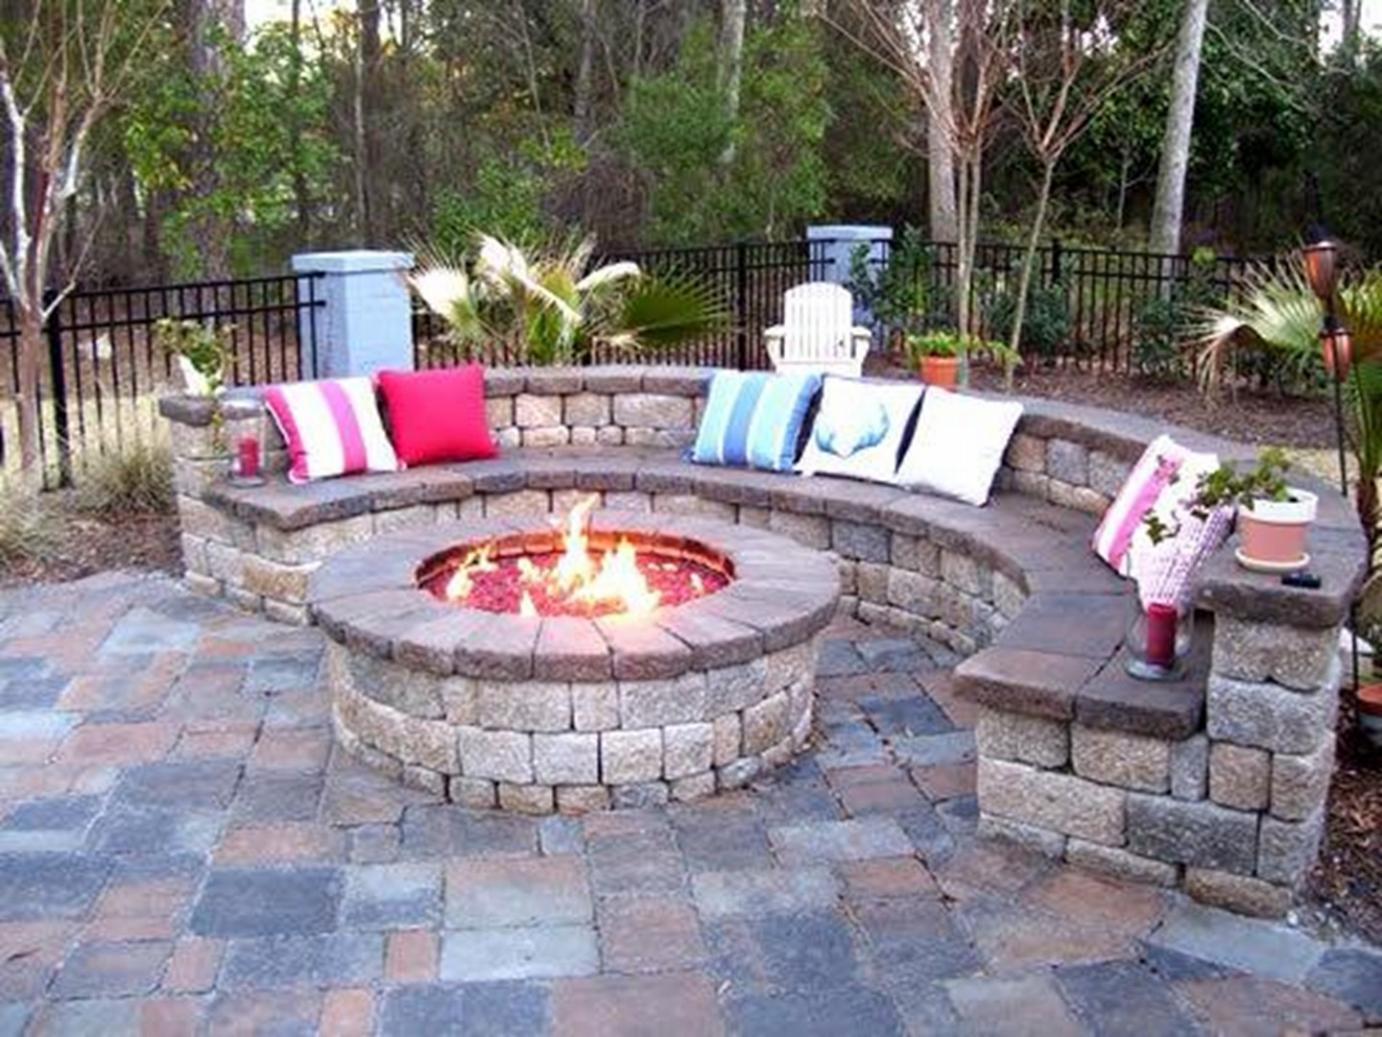 Backyard Designs Ideas paver design ideas hgtv Backyard Fire Pit Design Backyard Fire Pit Ideas Landscaping